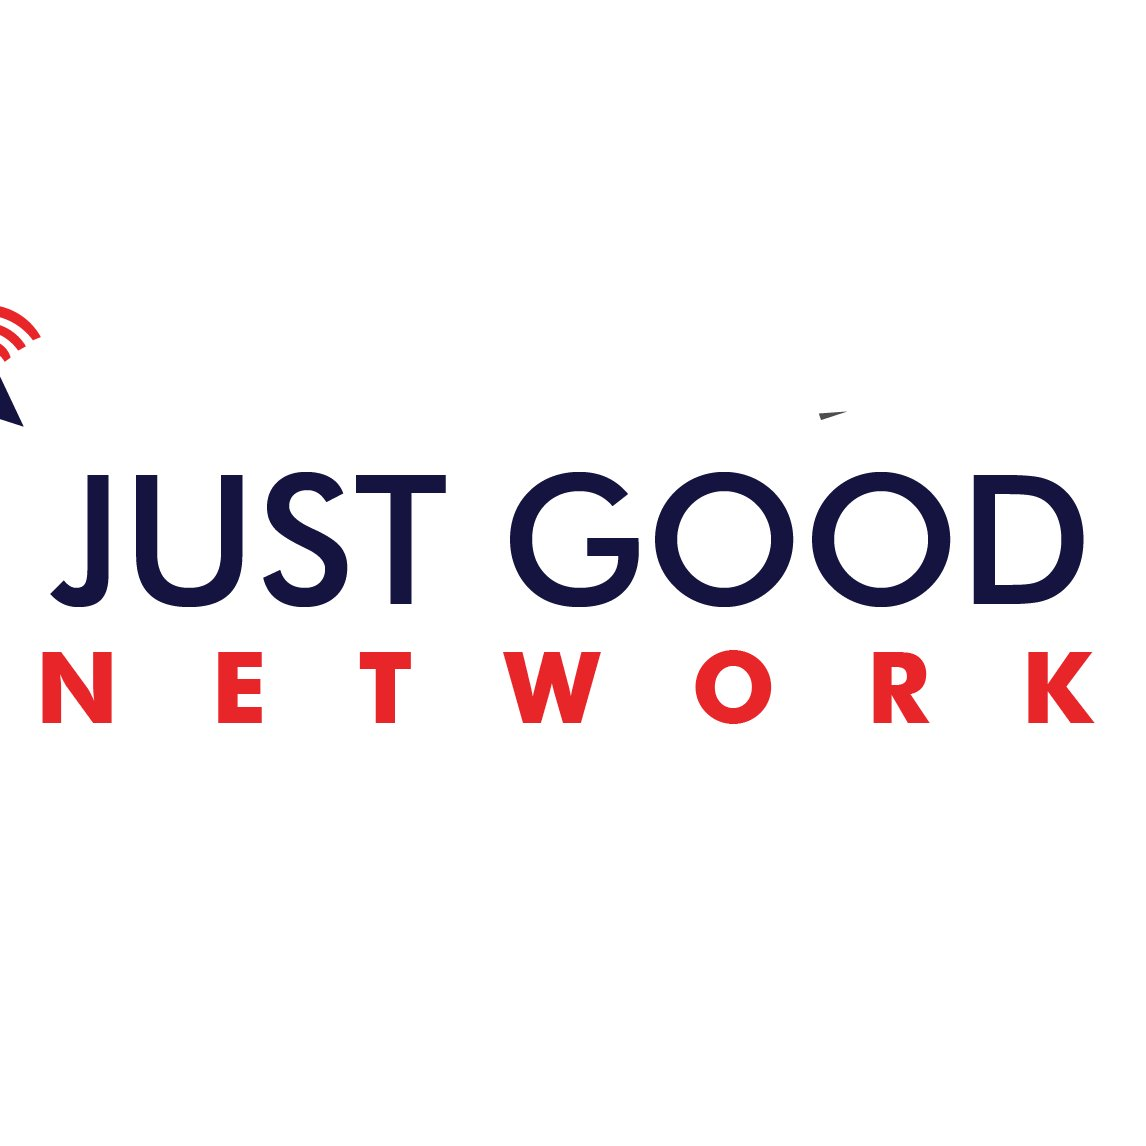 Just Good Network